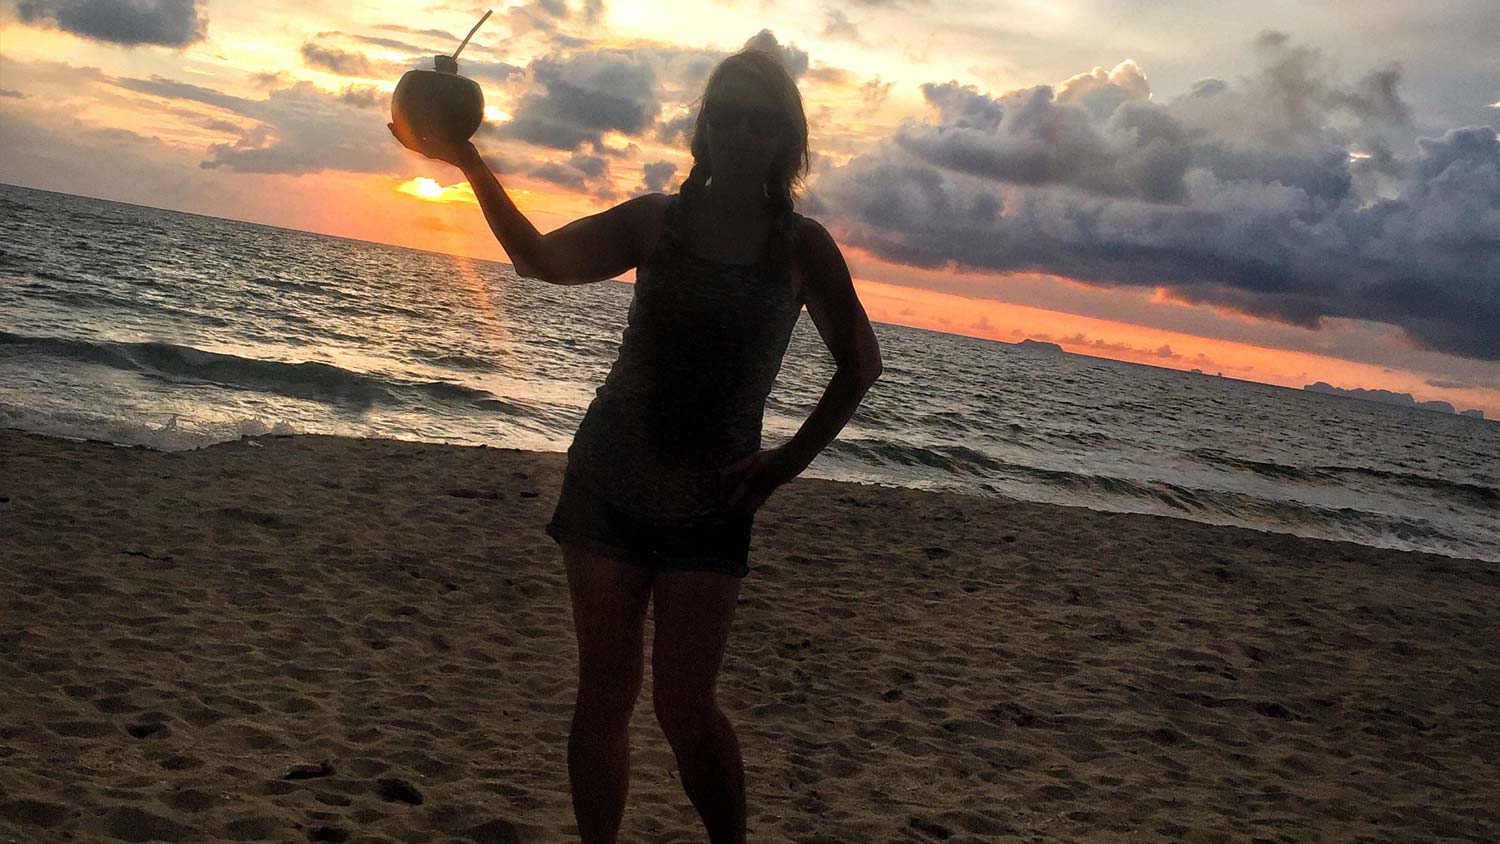 Silhouette in sunset with coconut